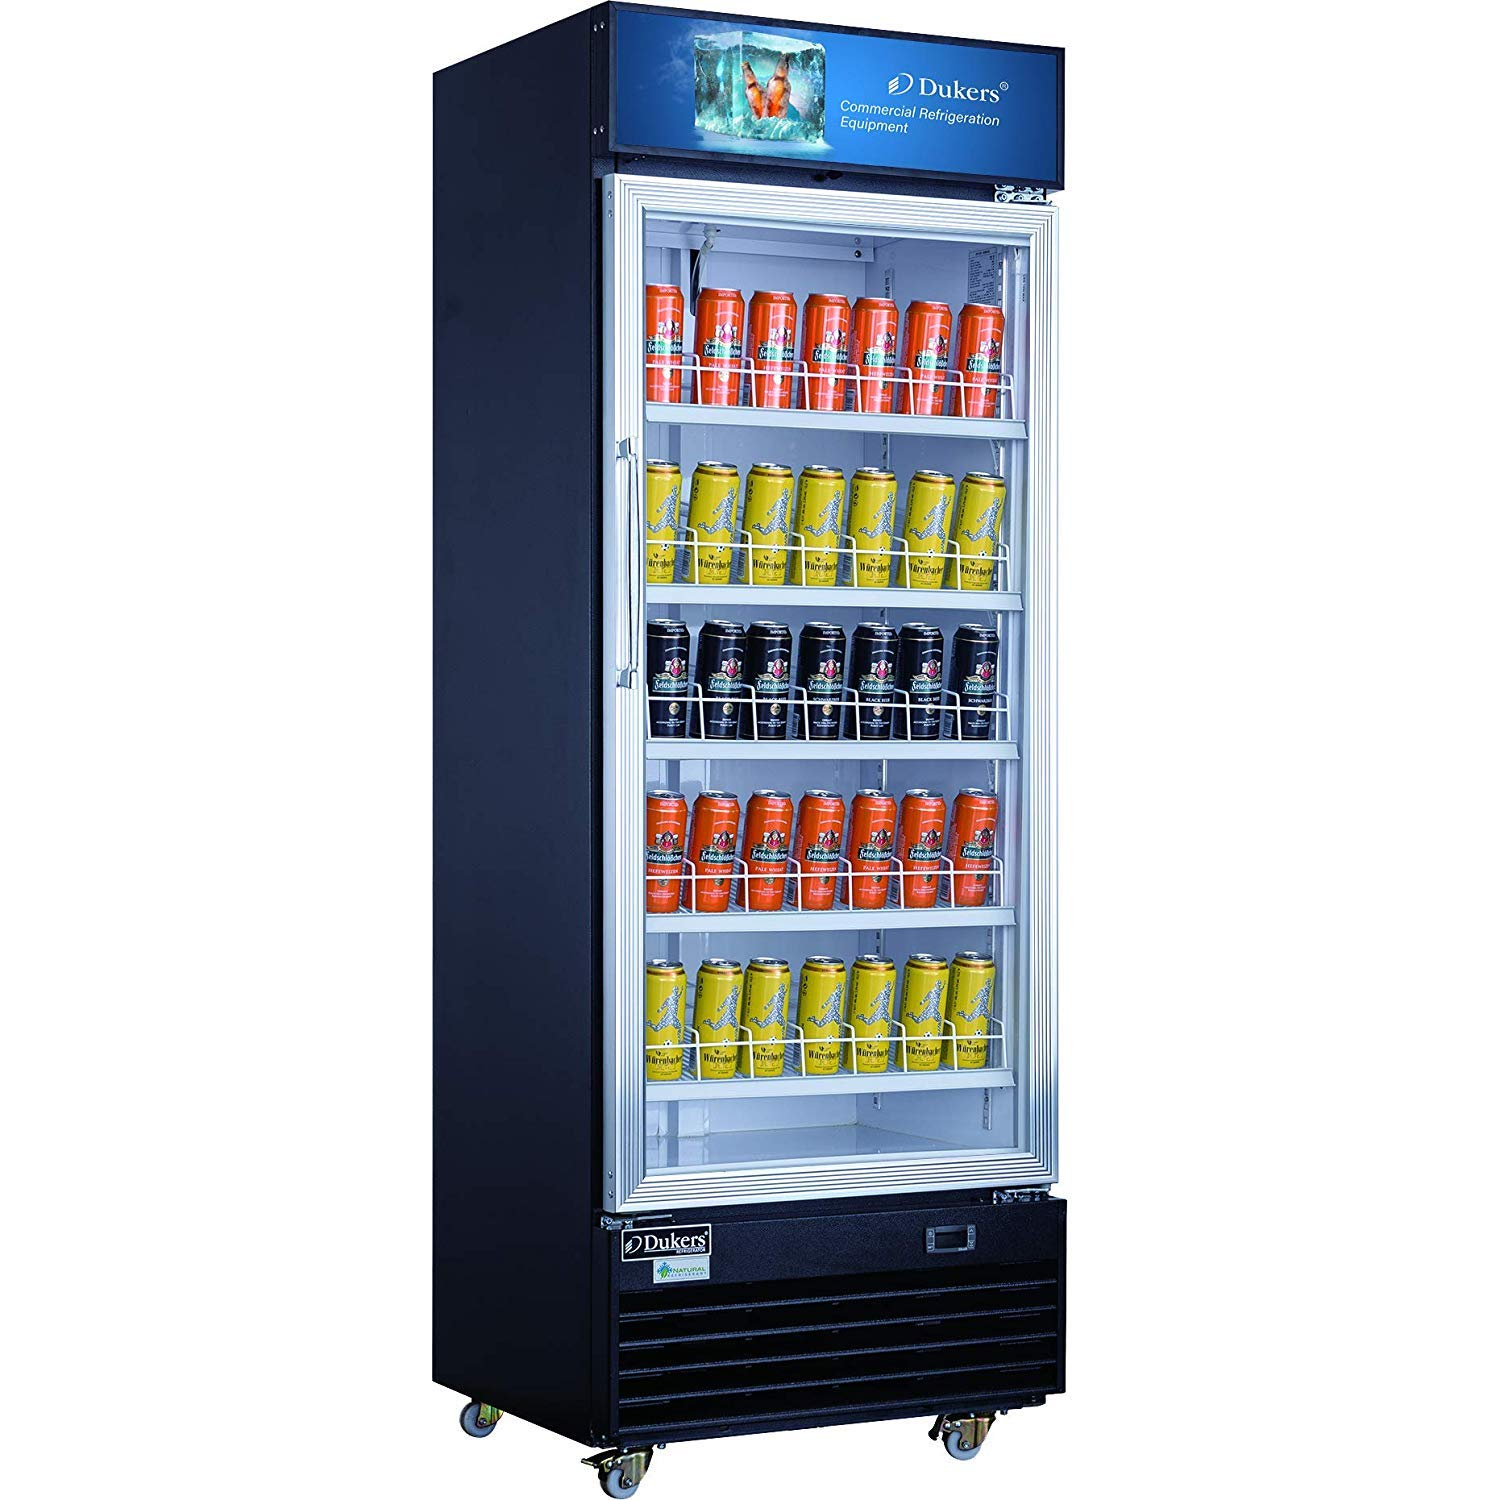 Dukers DSM-15R 14.7 cu. ft. Commercial Display Cooler Merchandiser Refrigerator by Dukers Appliance USA